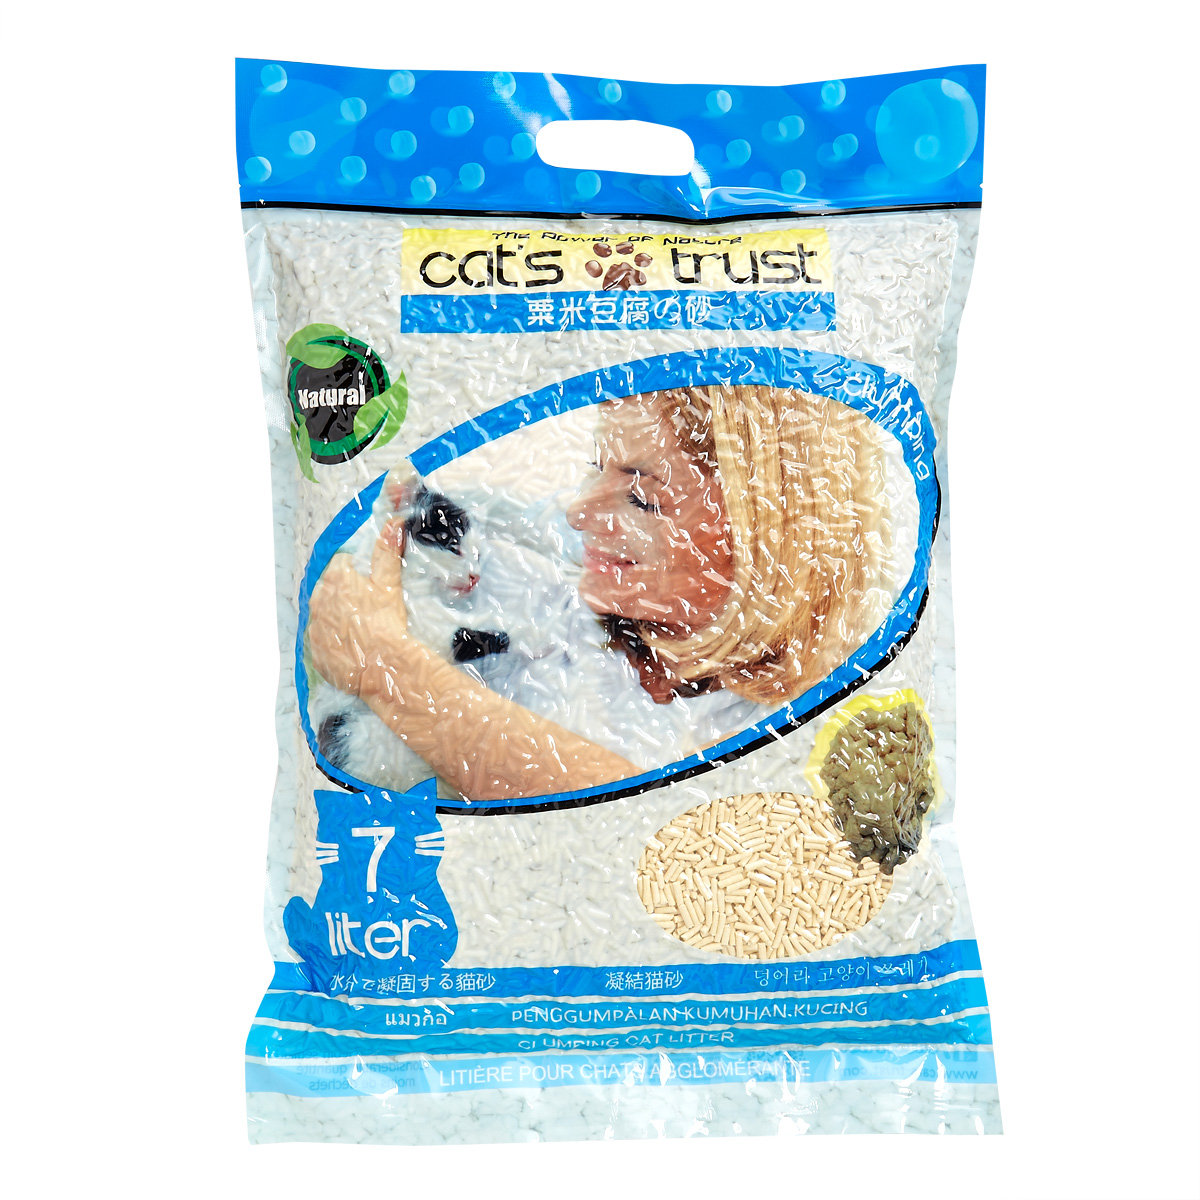 Corn-Tofu Cat Litter with Peaches 7L